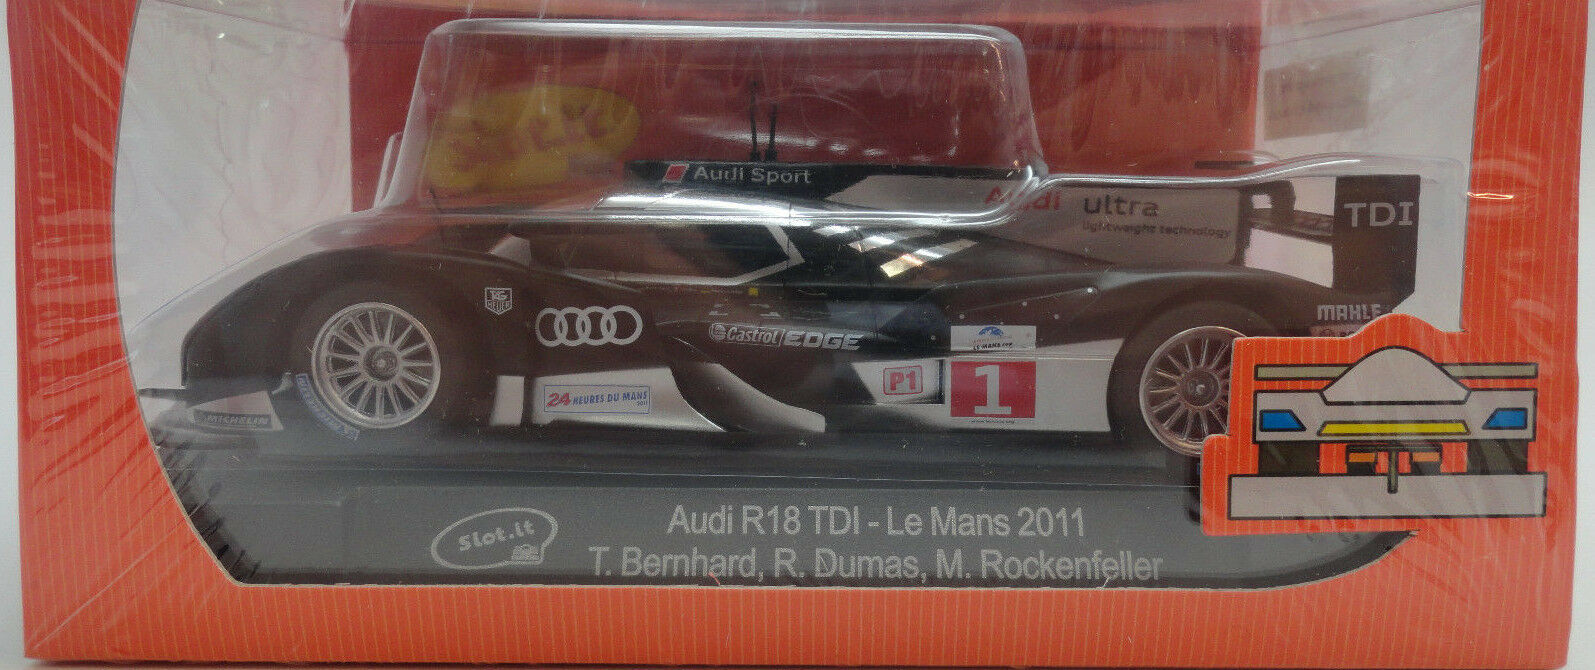 Slot It Audi R18 TDI - 2011 Le Mans 1 32 Scale slot Car CA24B